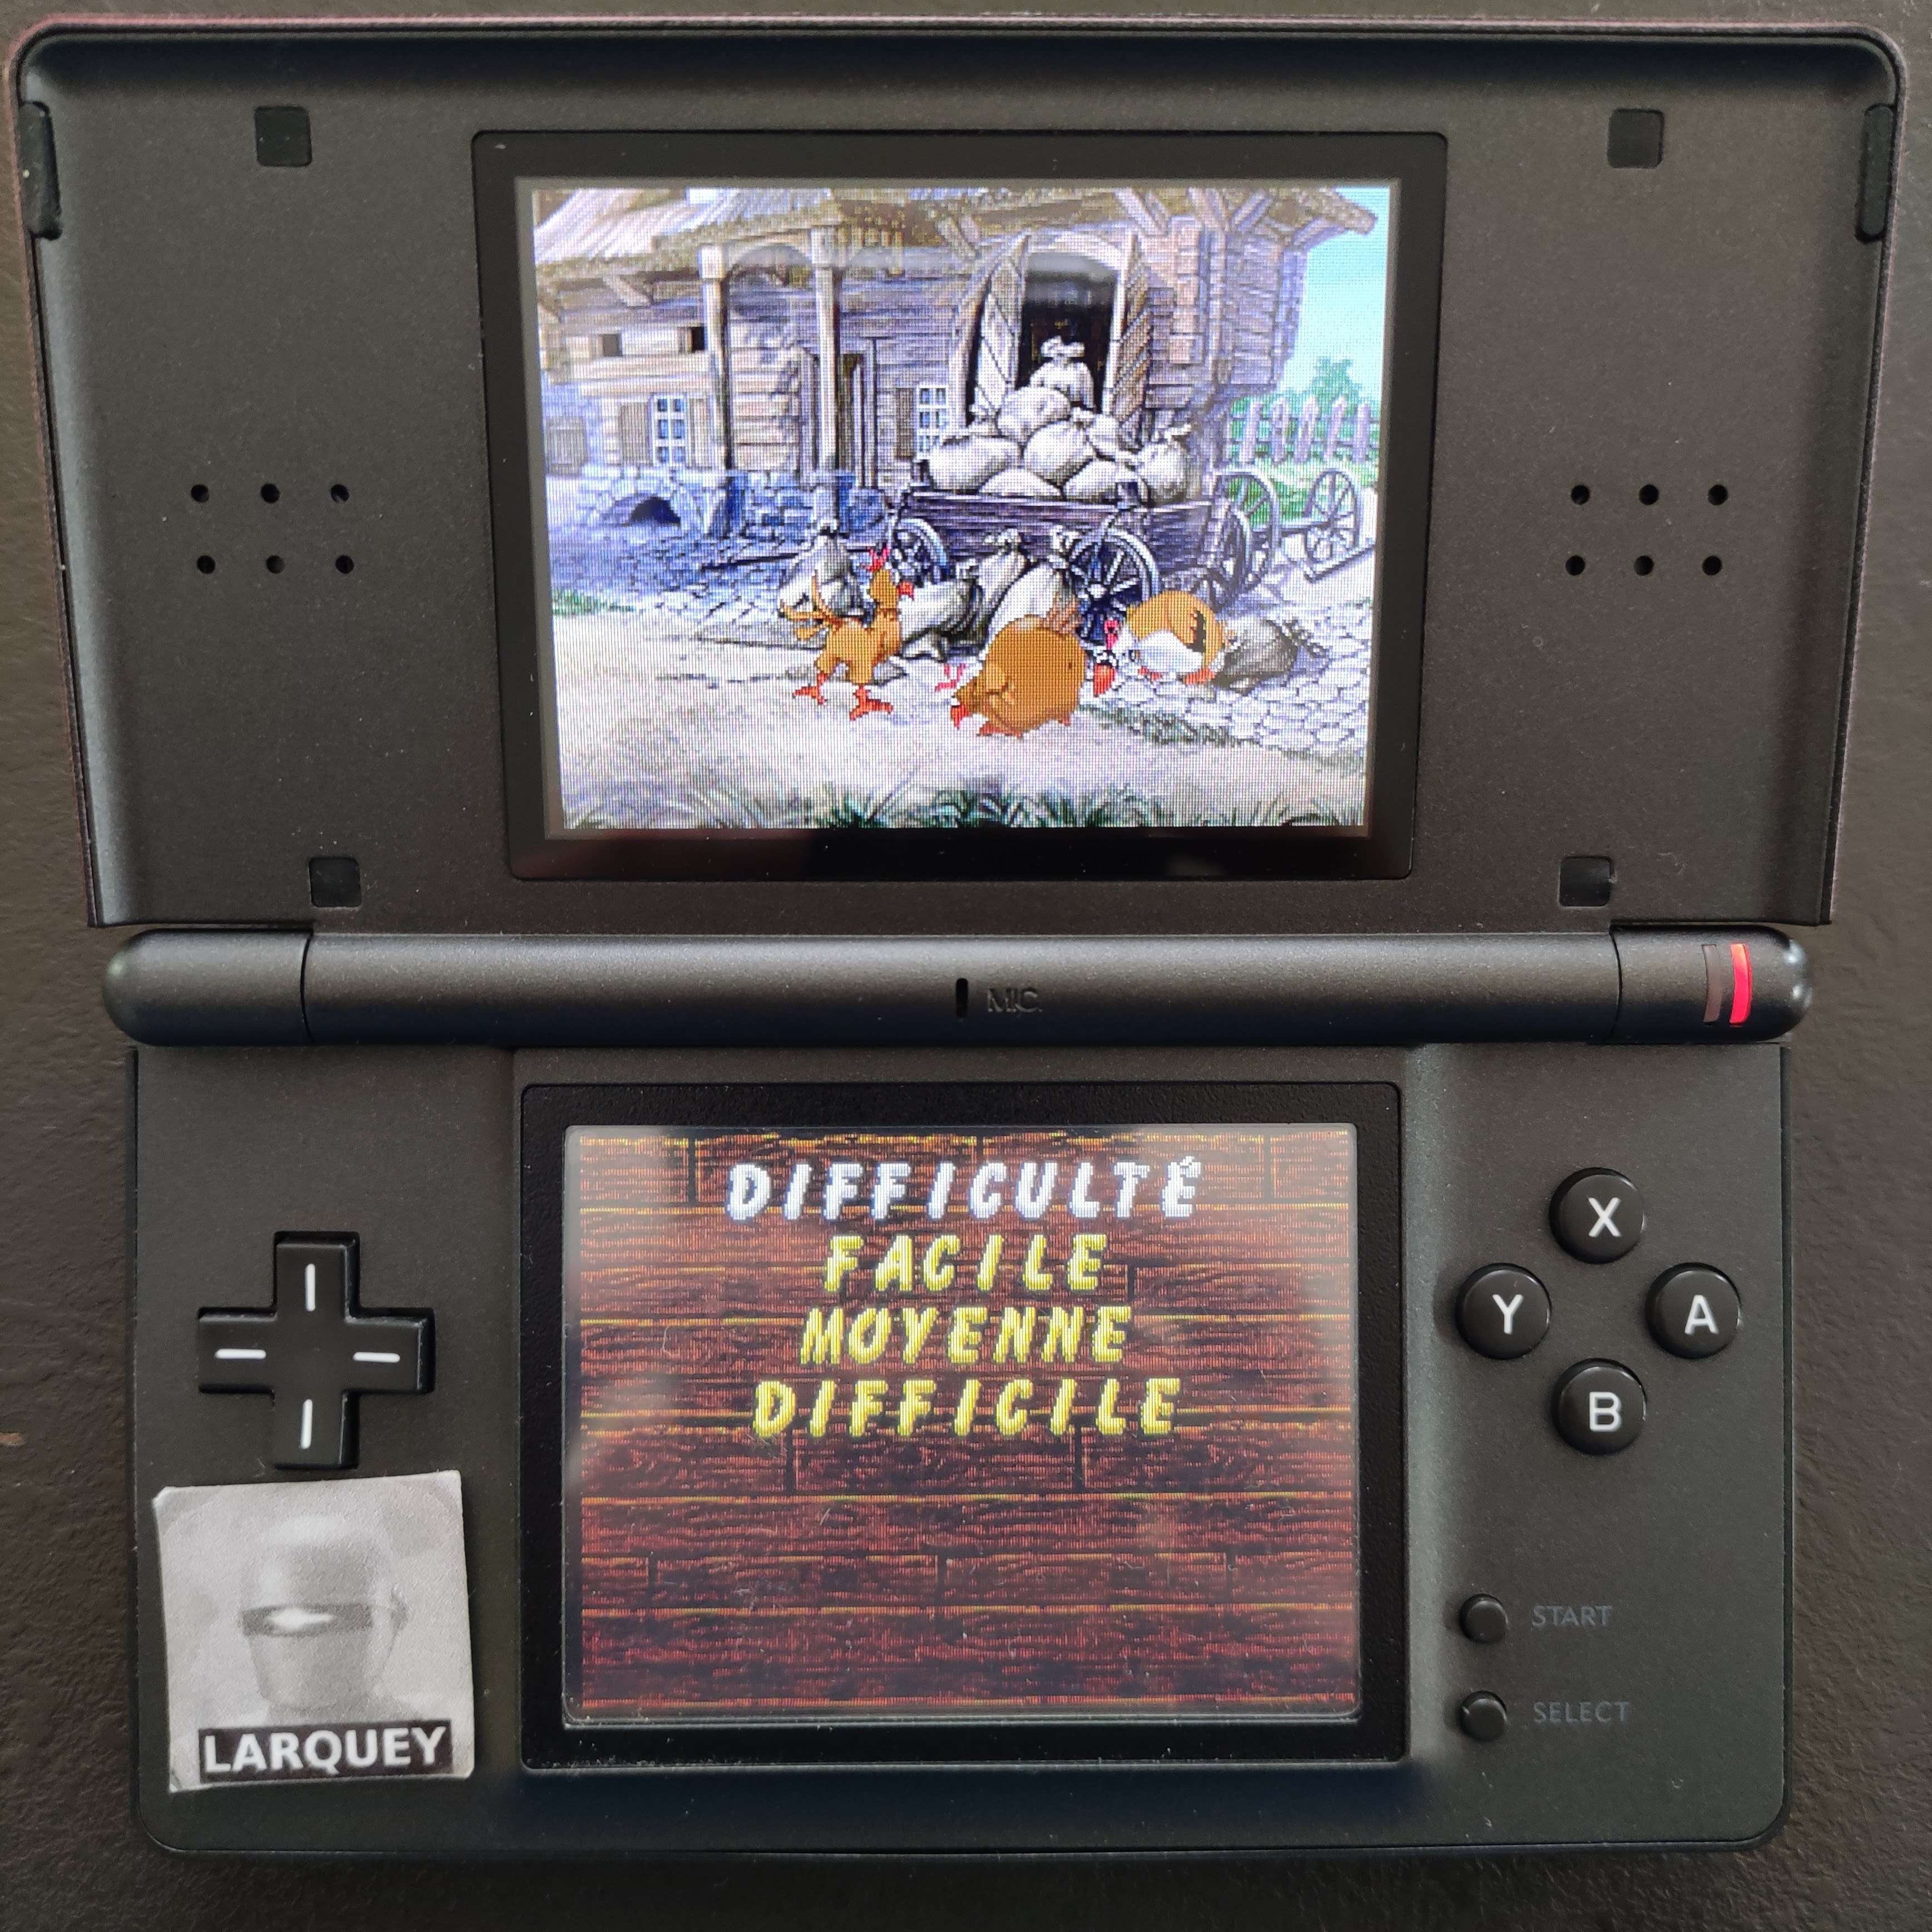 Larquey: Chicken Shoot [Classic: Easy] (Nintendo DS) 4,150 points on 2020-09-27 03:35:19